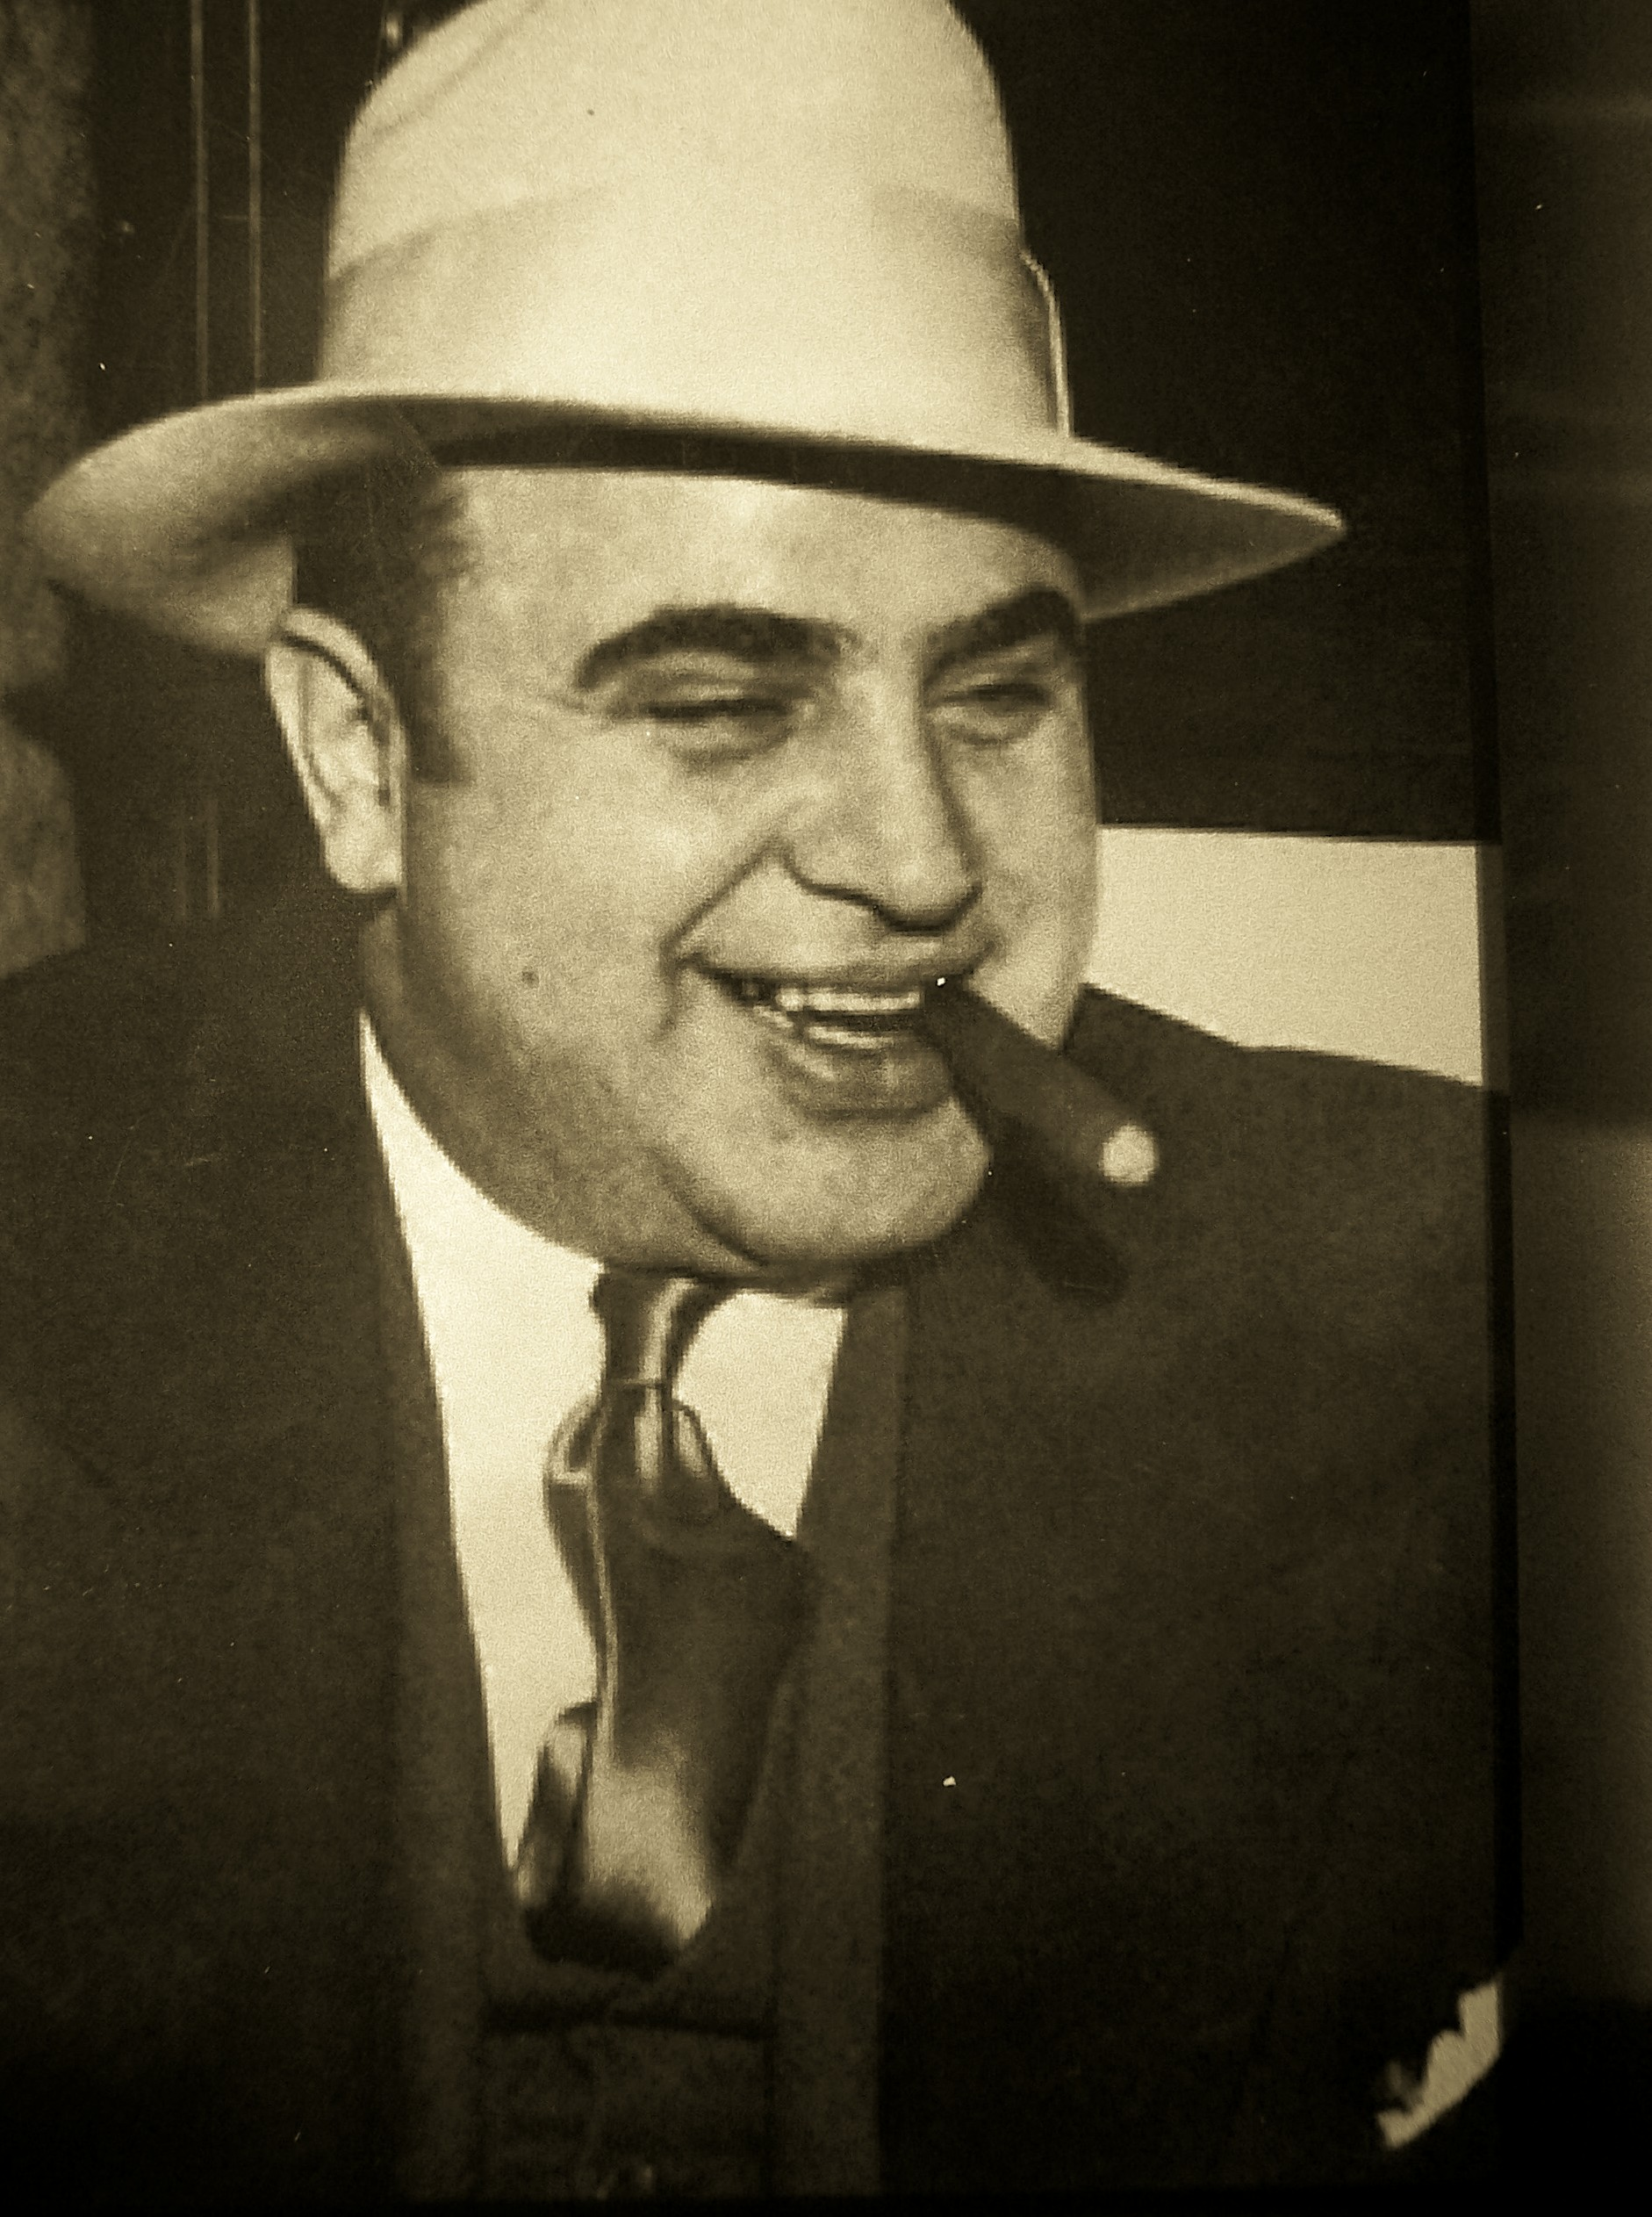 5. Al Capone (nearly $1.3 billion per year in income, allowing for inflation)